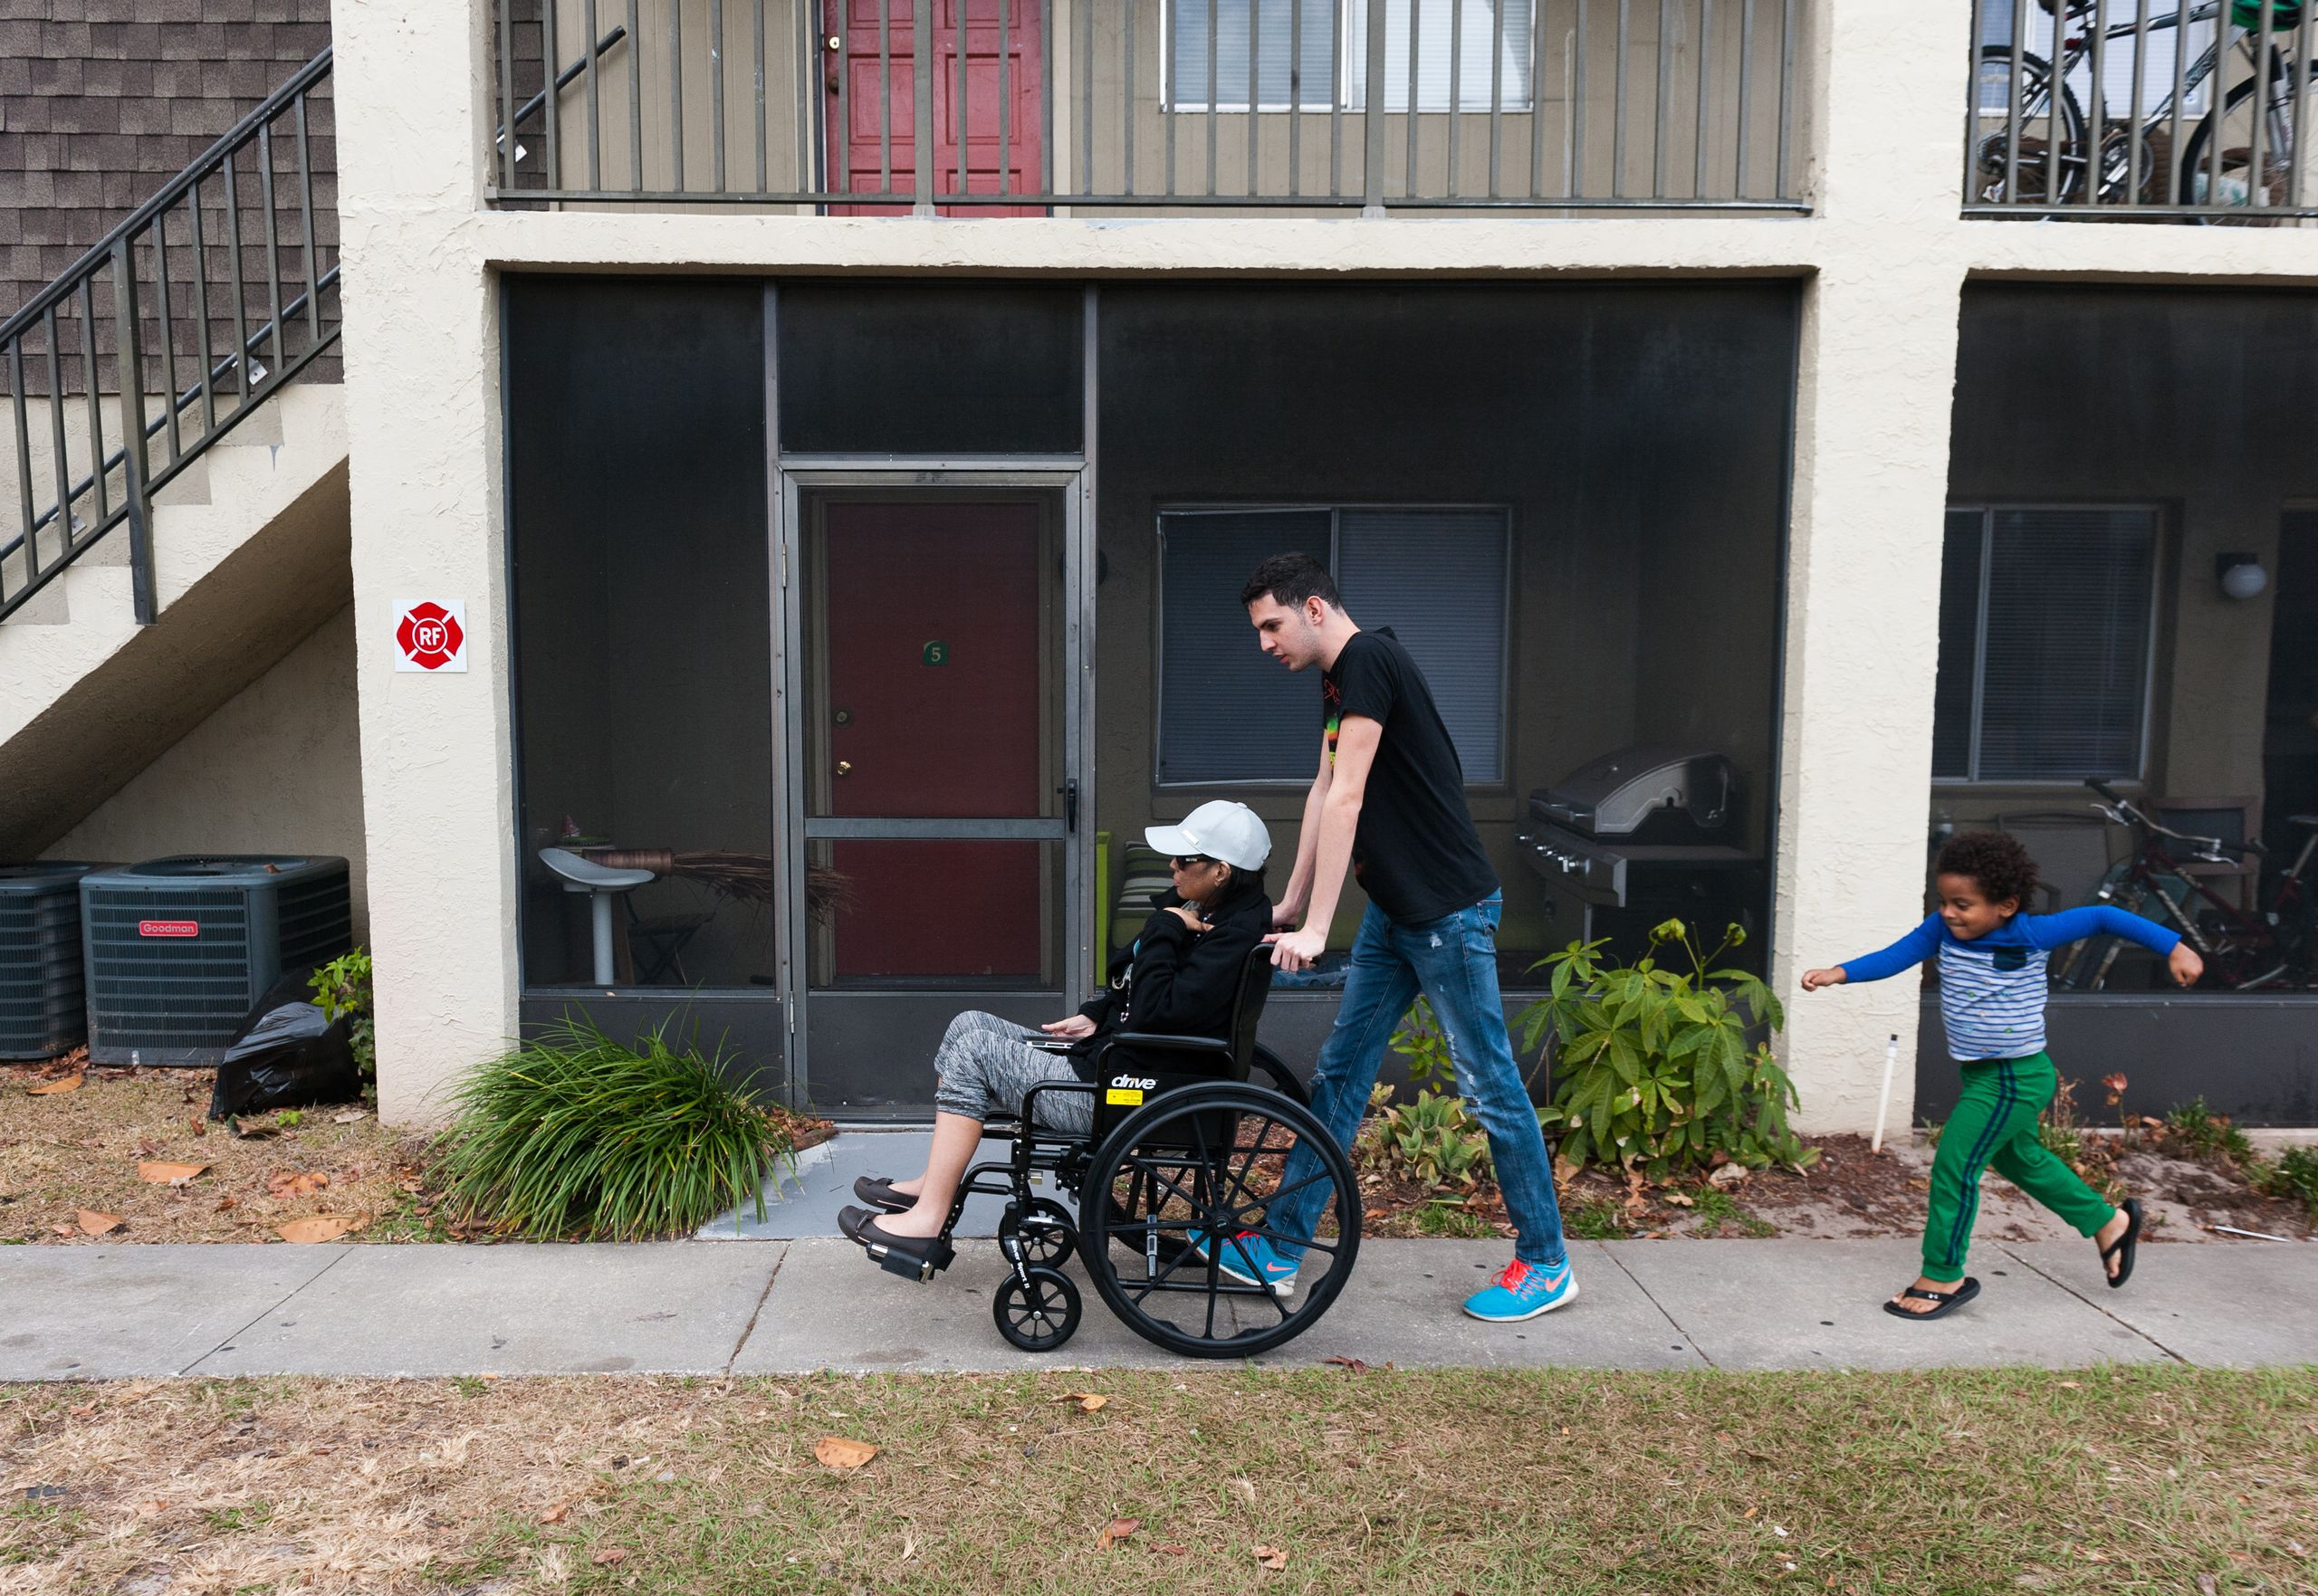 Jan Miguel pushes his mother, Mariluz, in a wheelchair on their way to get a ride to a doctor appointment. Jan Miguel's